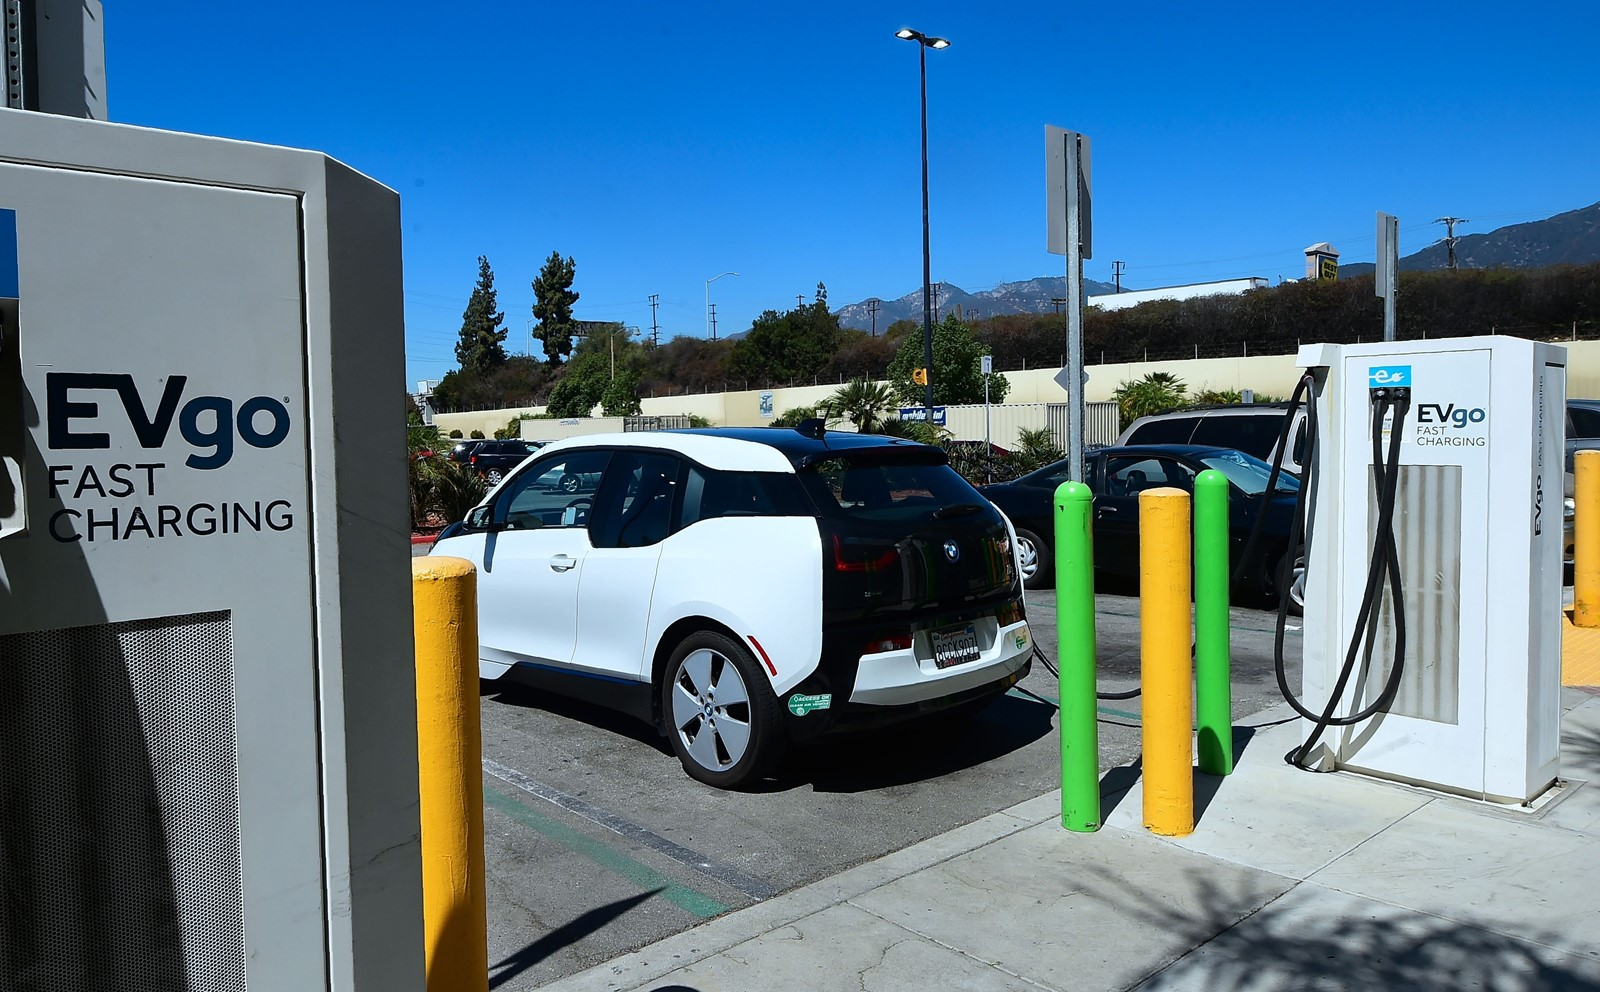 The low-carbon fuel standard is expected to cut the cost of a new electric vehicle by up to $2,000 over the next 12 years. — Photograph: Frederic J. Brown/Agence France-Presse/Getty Images.